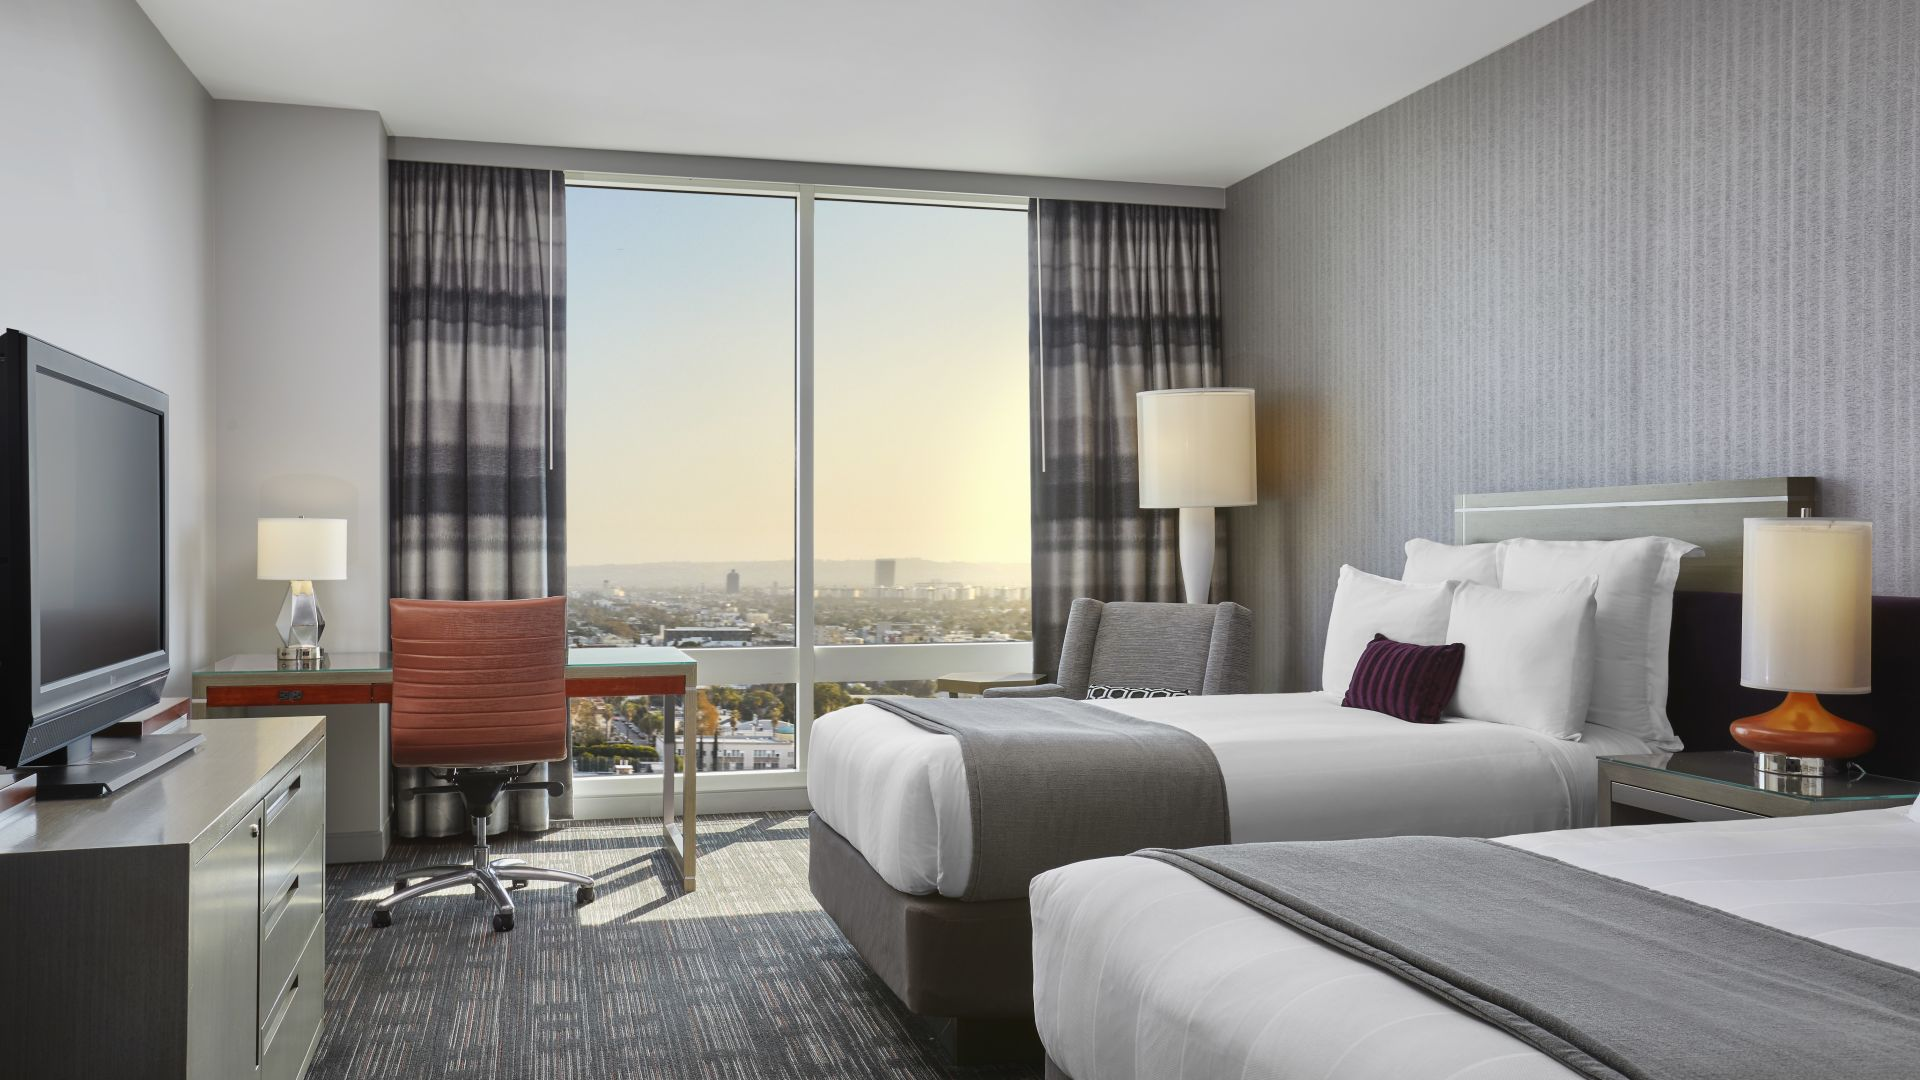 Cama doble y vista al horizonte | Loews Hollywood Hotel